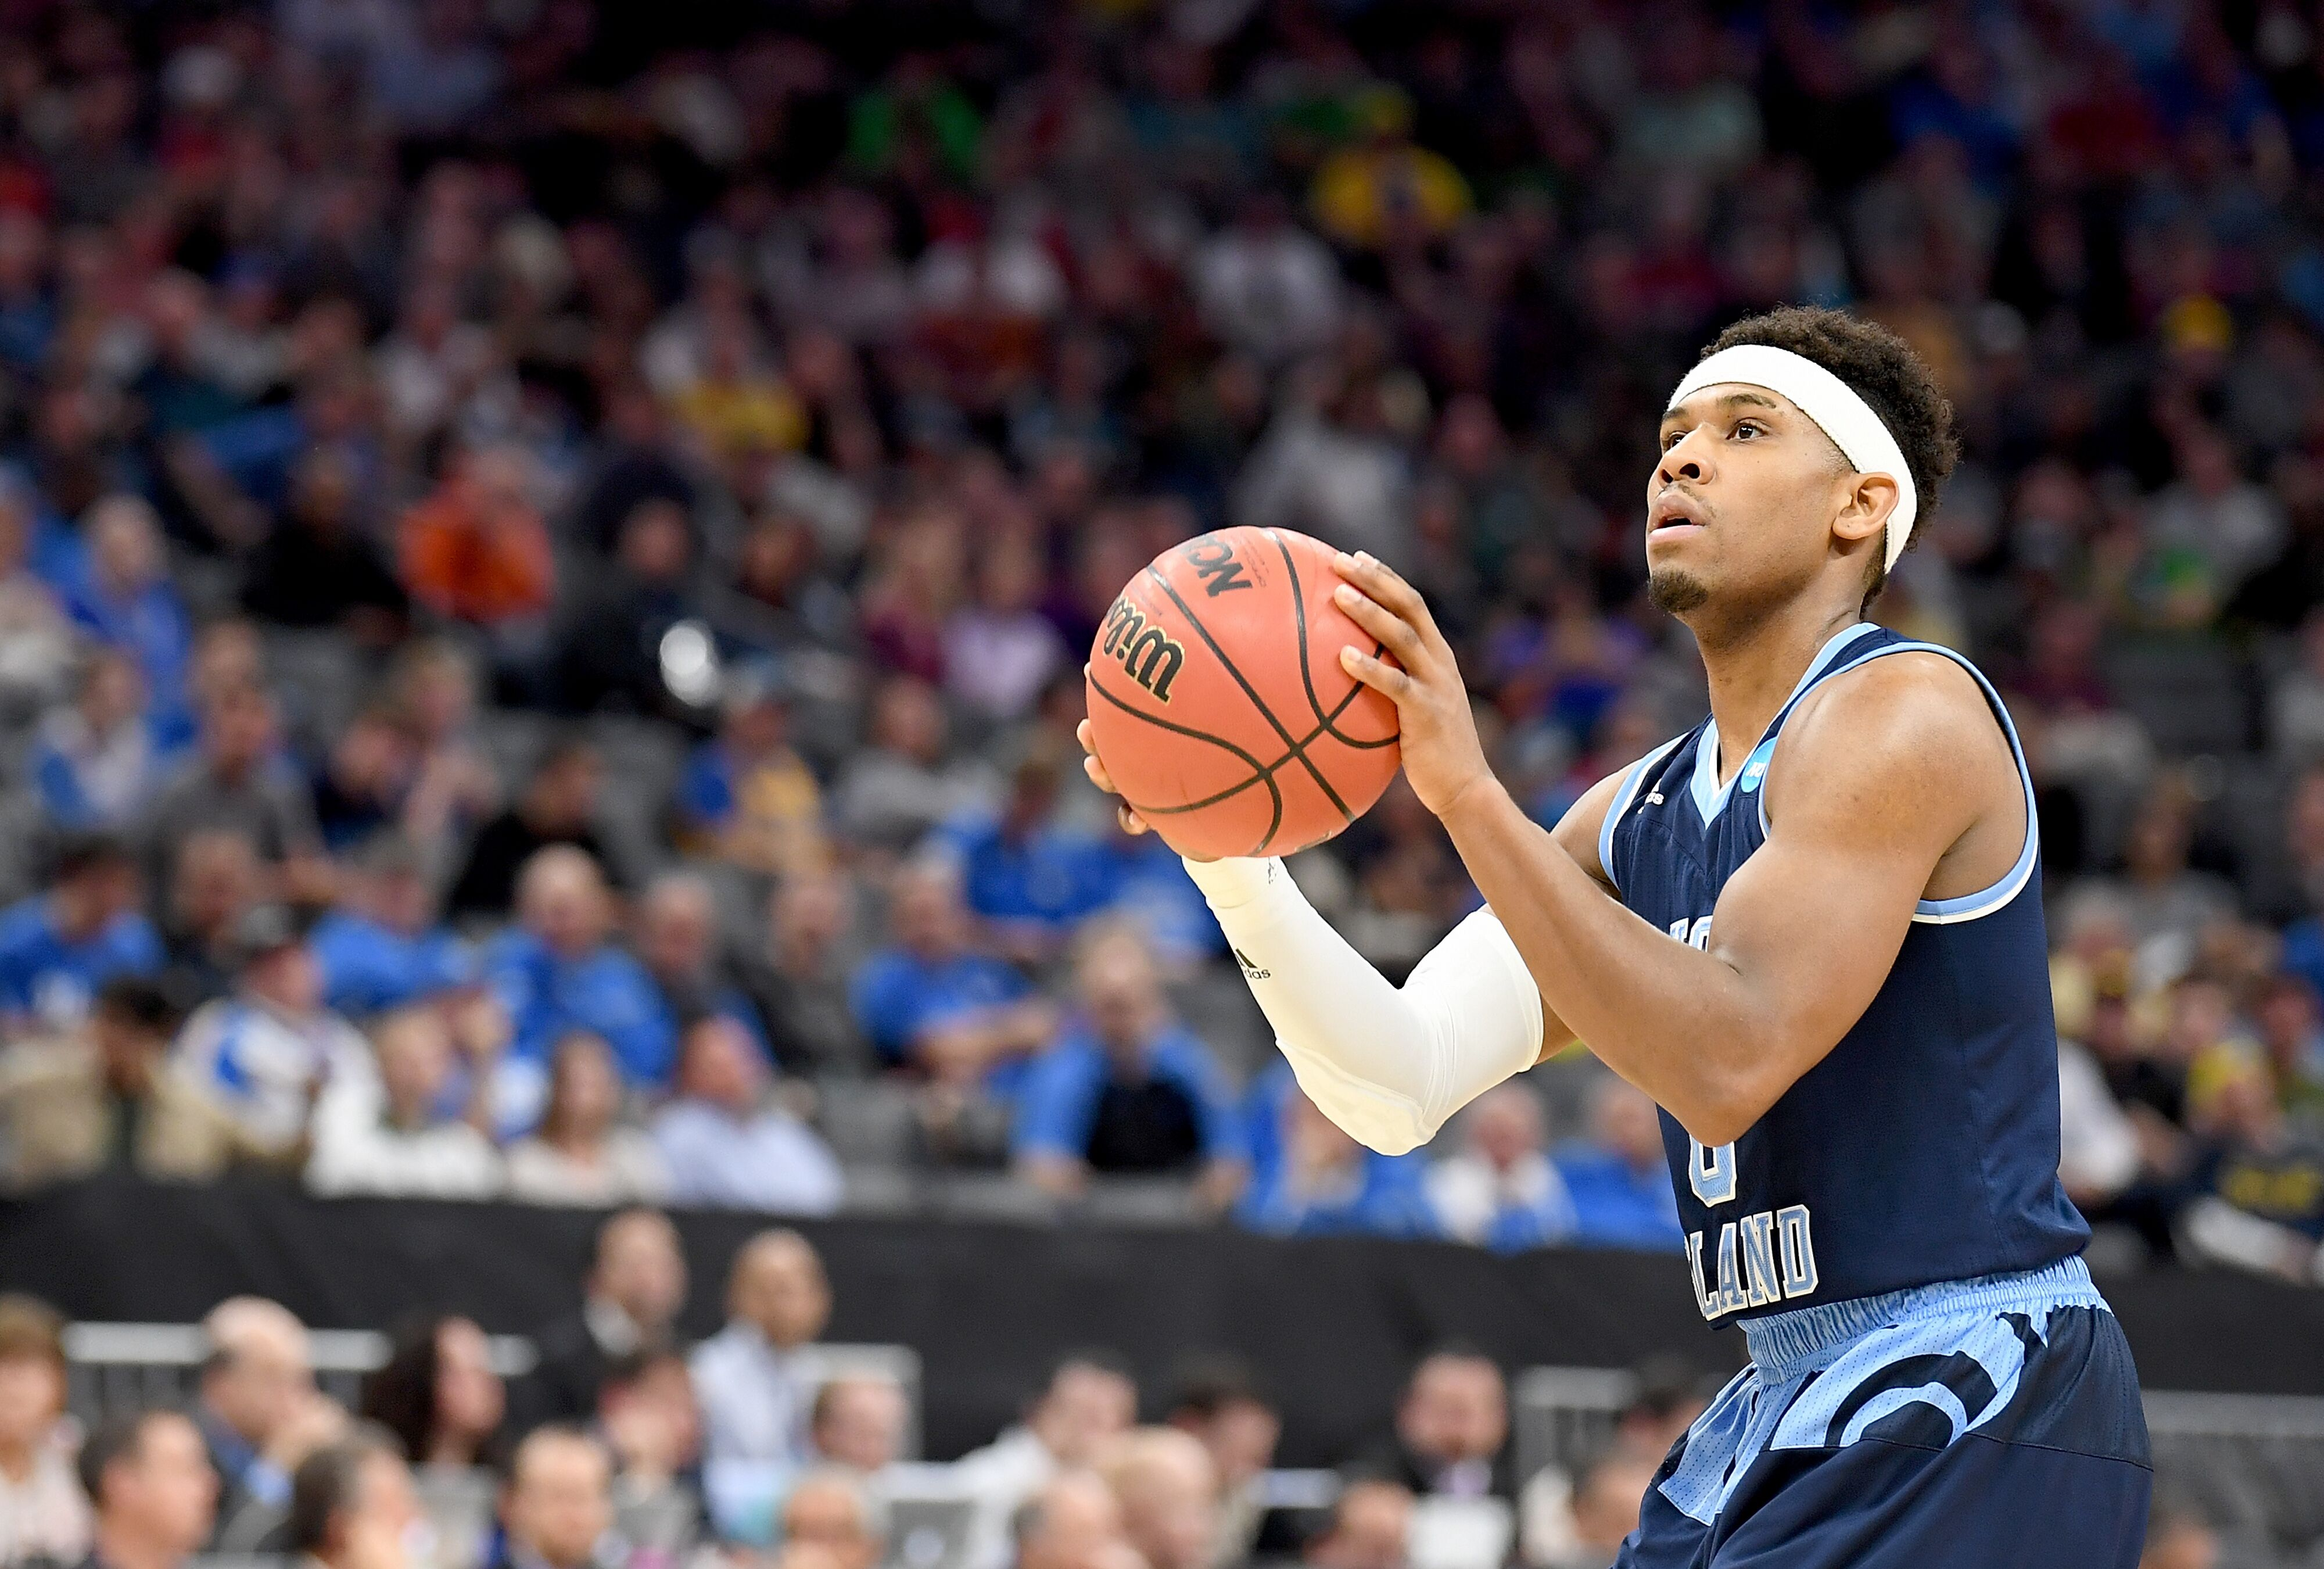 college basketball: uri, providence, & harvard receive top-25 votes